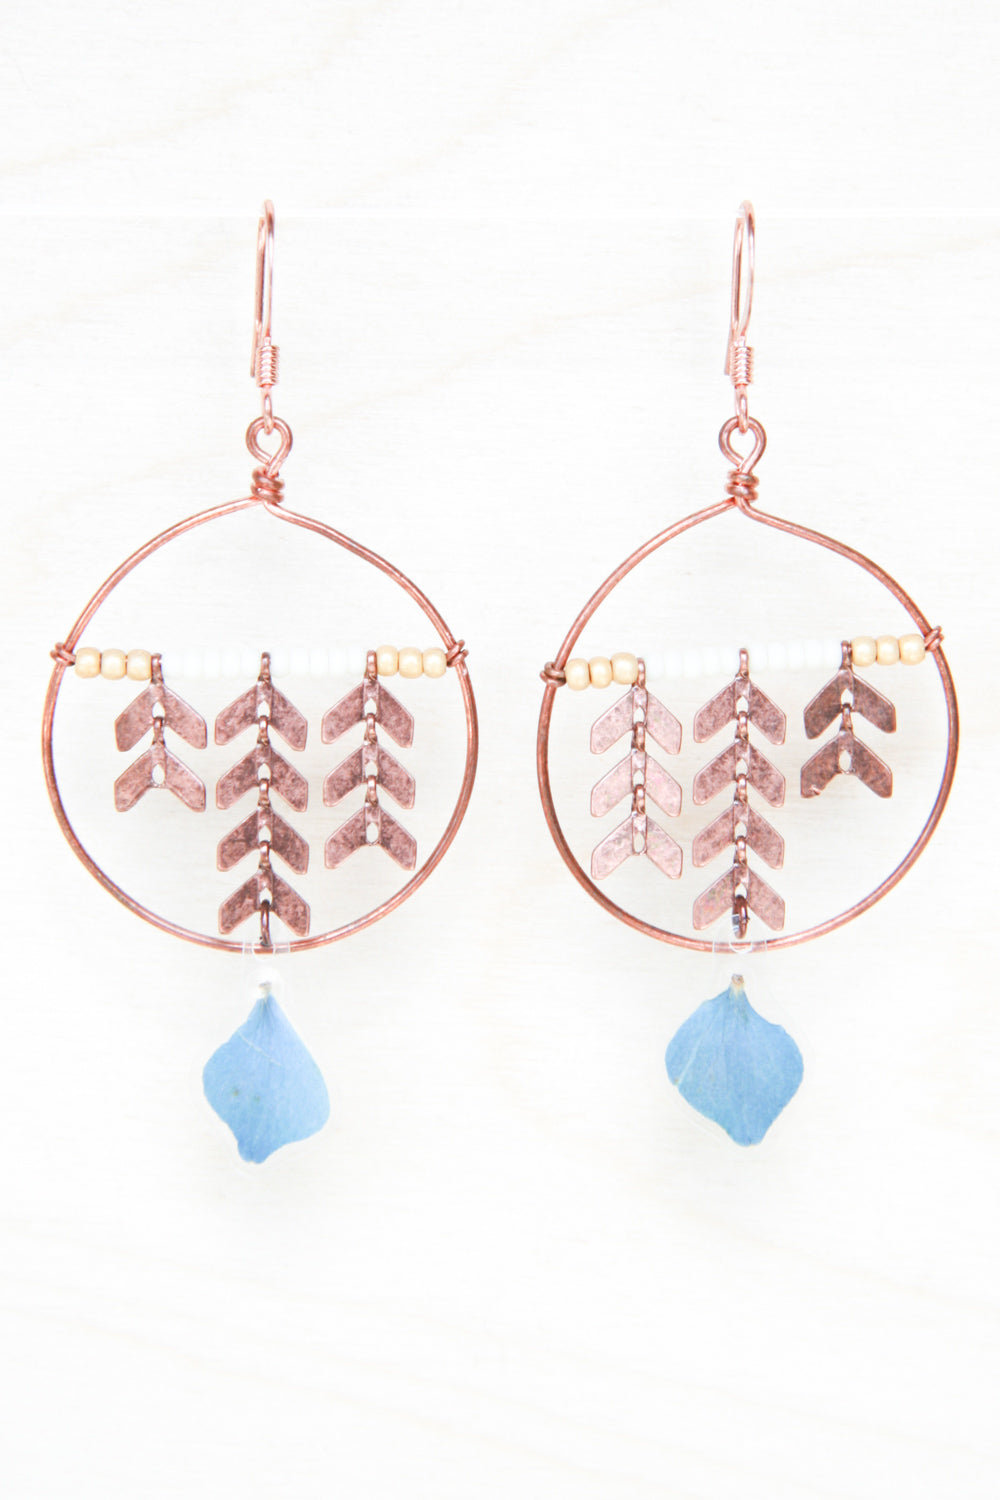 Blue Hydrangea Pressed Petal Earrings with Copper Chevron & Hoops - Gold & Cream